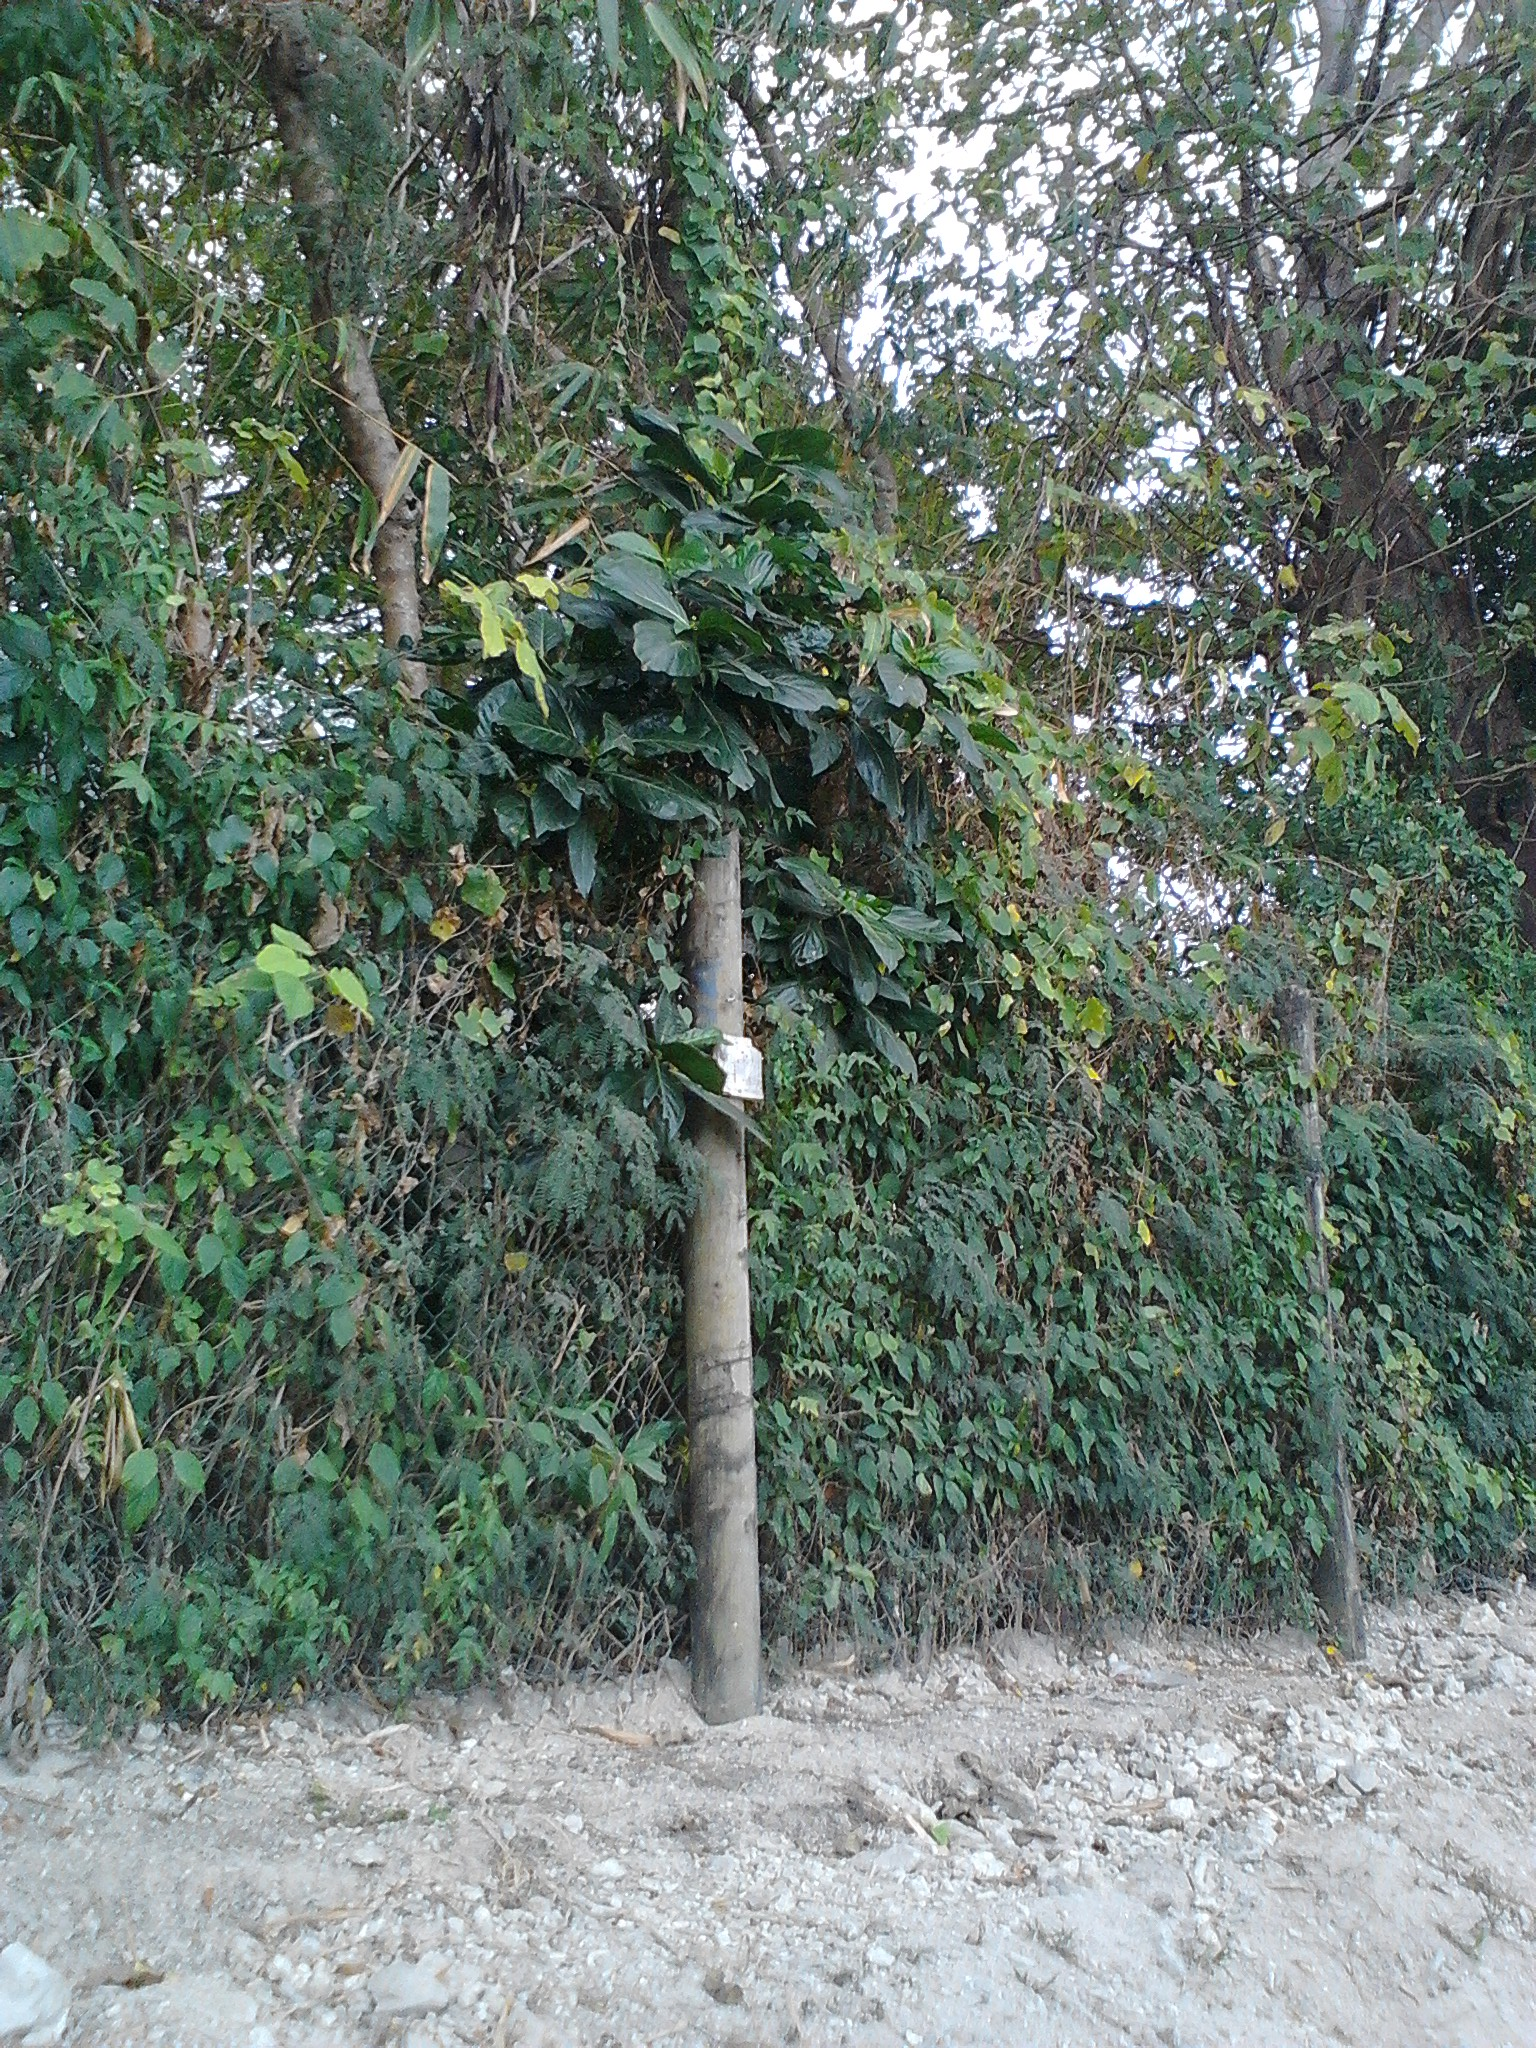 The Noni tree